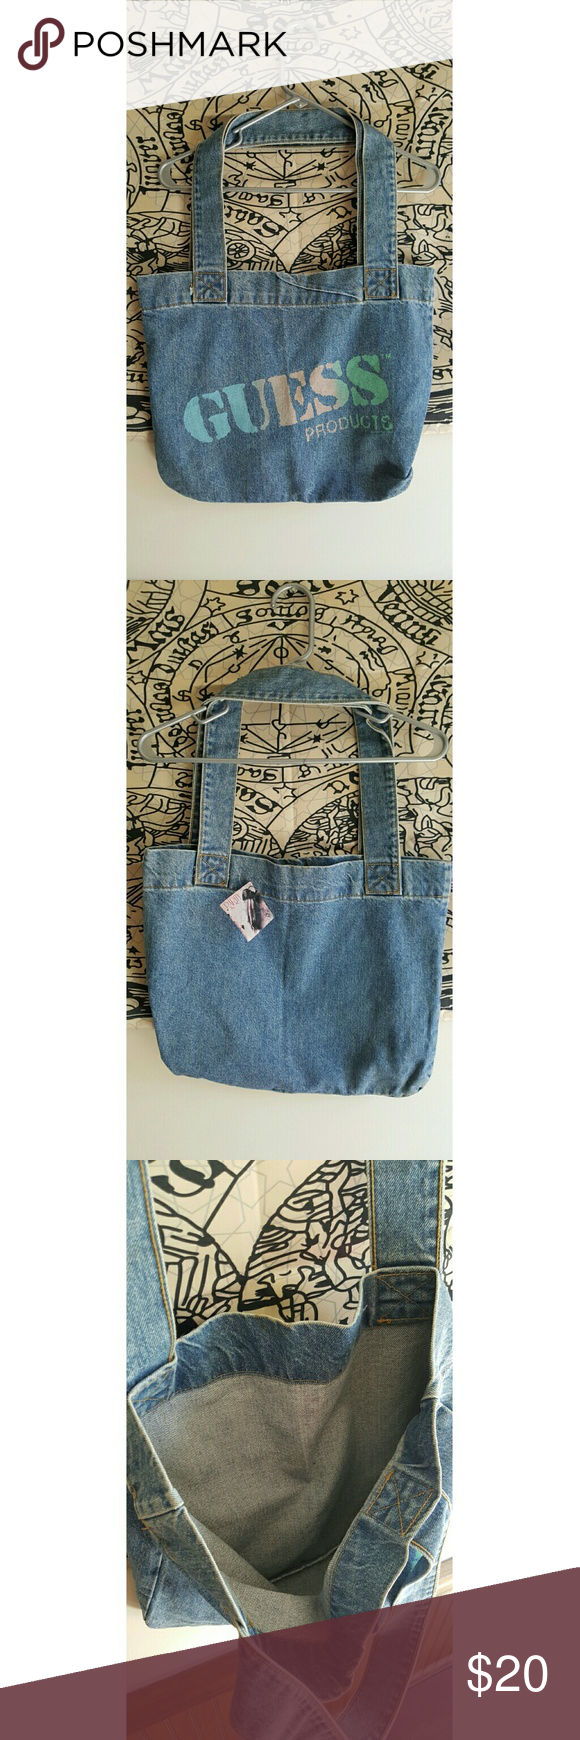 Vintage Guess bag 80s 90s jean tote bag. Soft jean material, not stiff! Has  an untreated mark on the back..see last picture😊 Guess Bags Totes d93547bf17